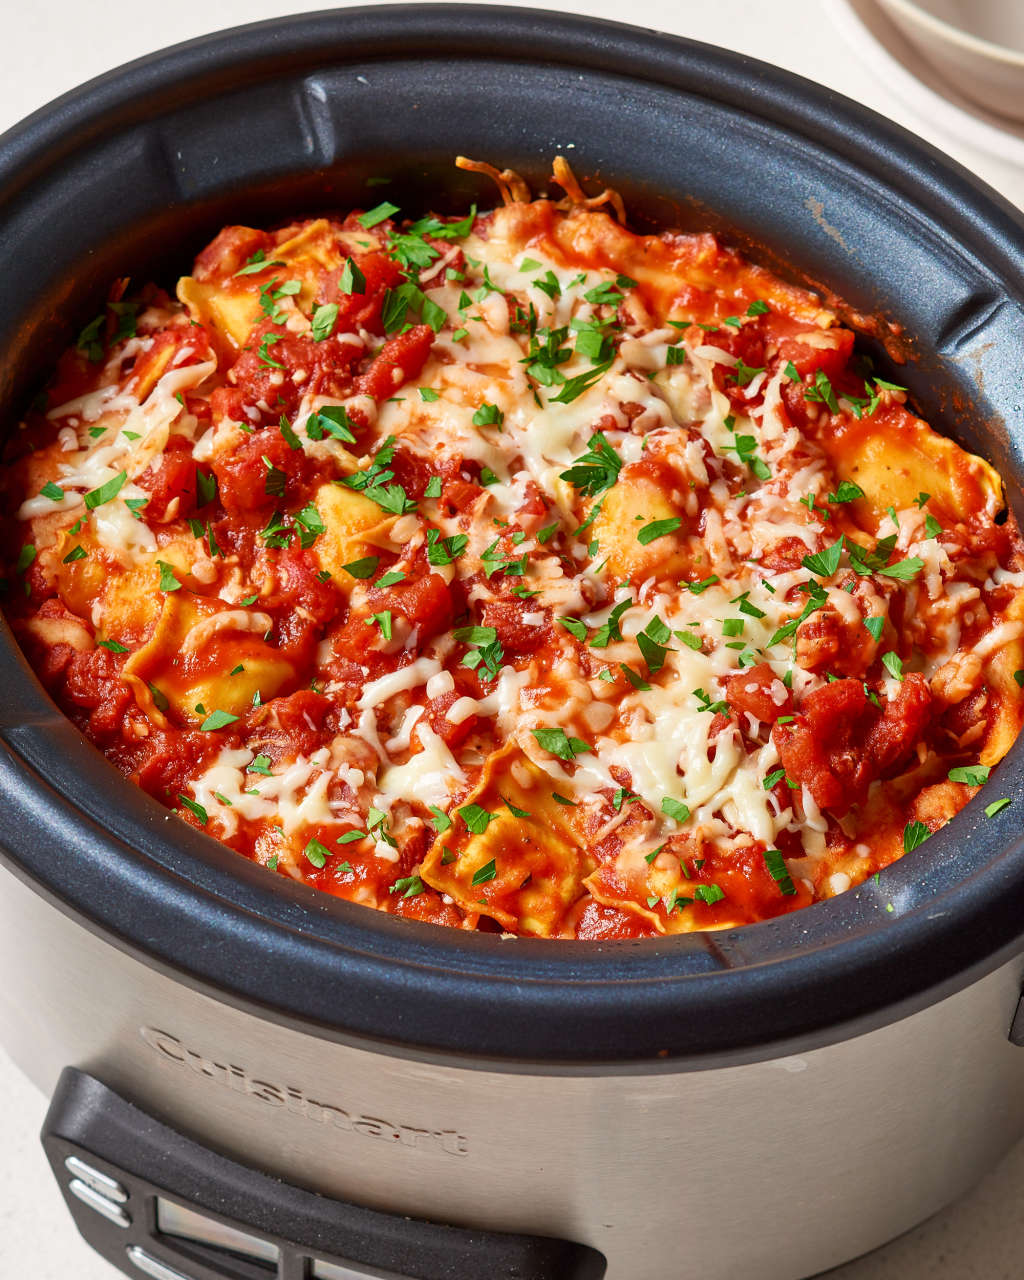 10 Vegetarian Meals From The Slow Cooker